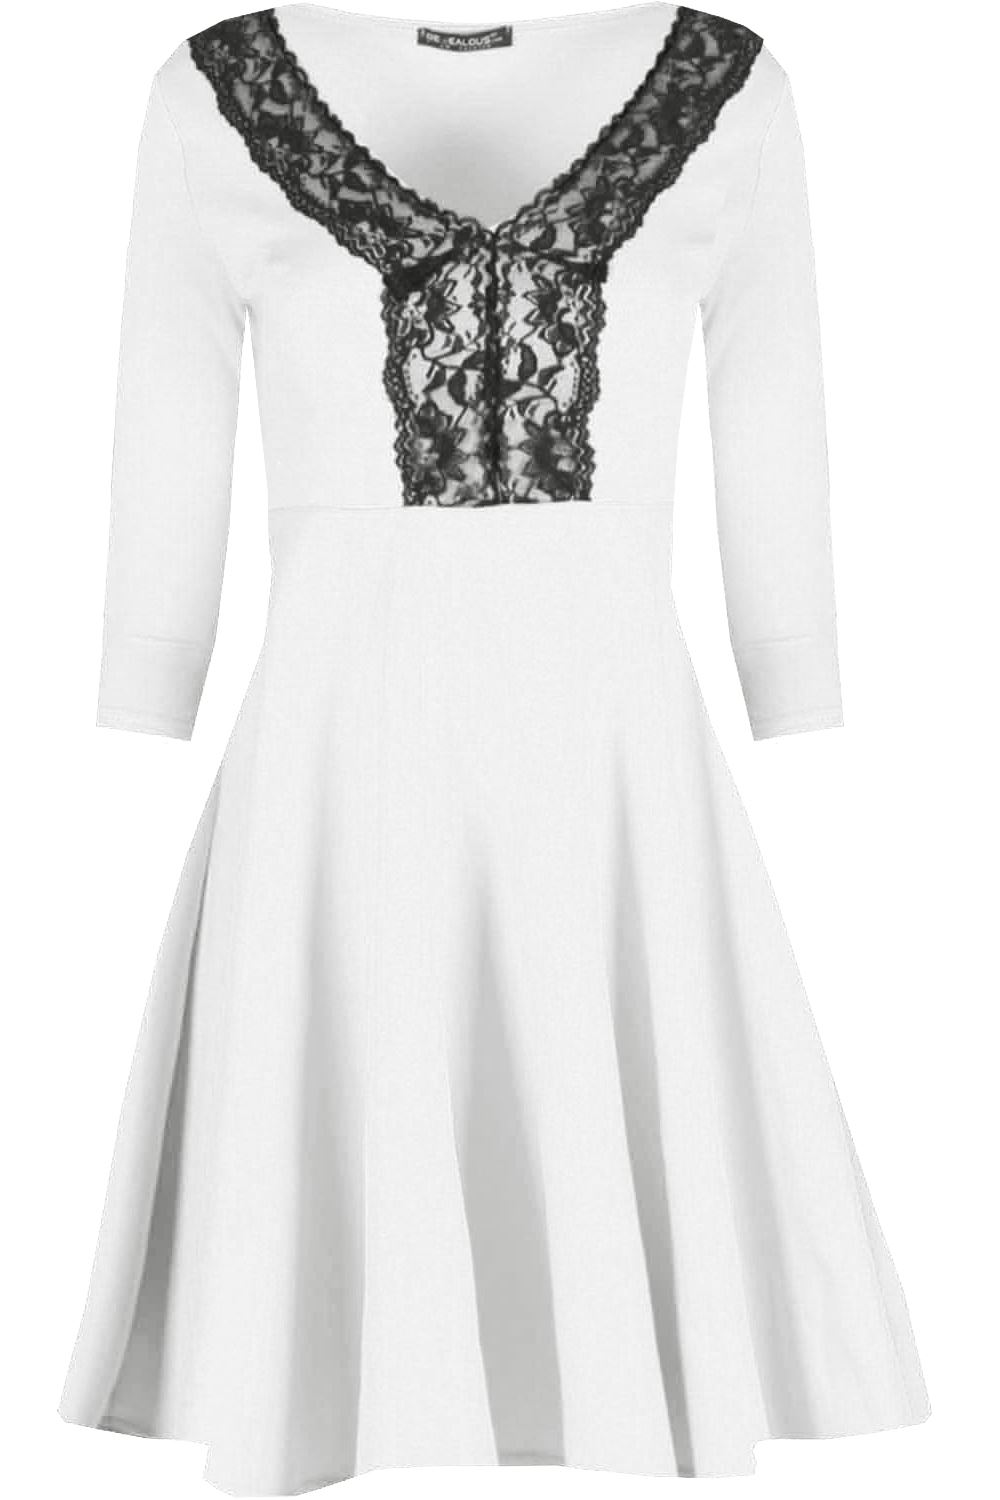 Womens-Swing-Dress-Ladies-Contrast-Lace-Insert-3-4-Sleeve-V-Neck-Skater-Dresses